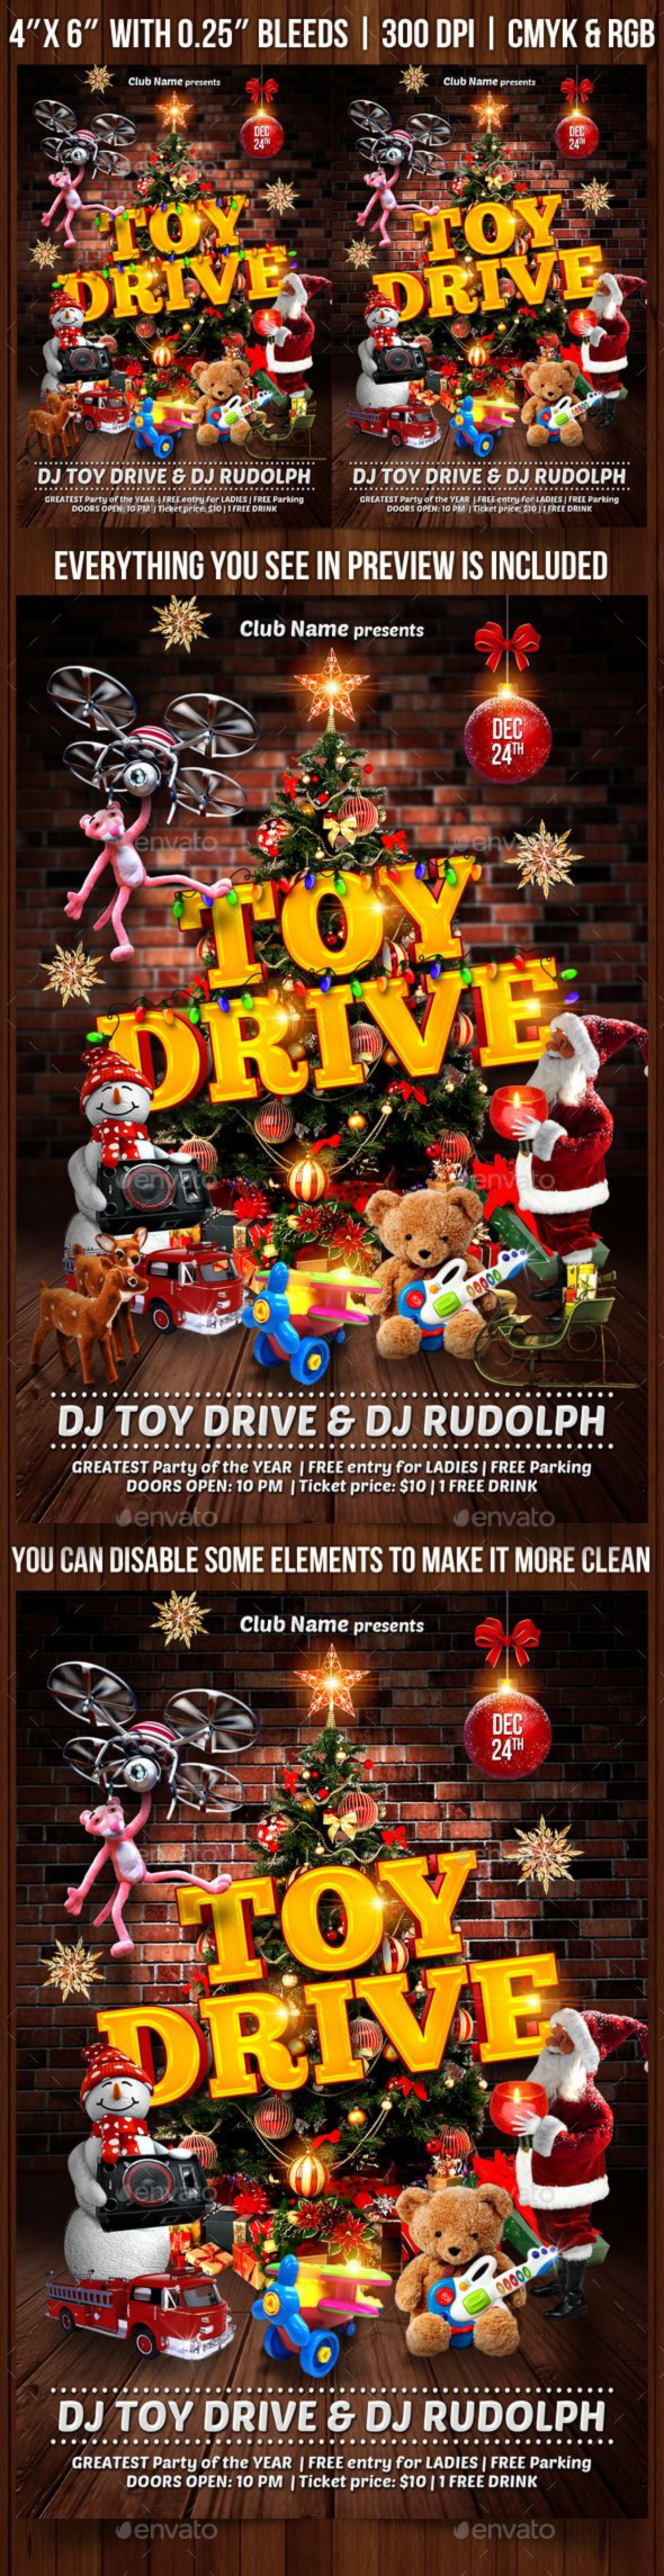 008 Frightening Toy Drive Flyer Template Highest Clarity  Holiday Download Free Word1920